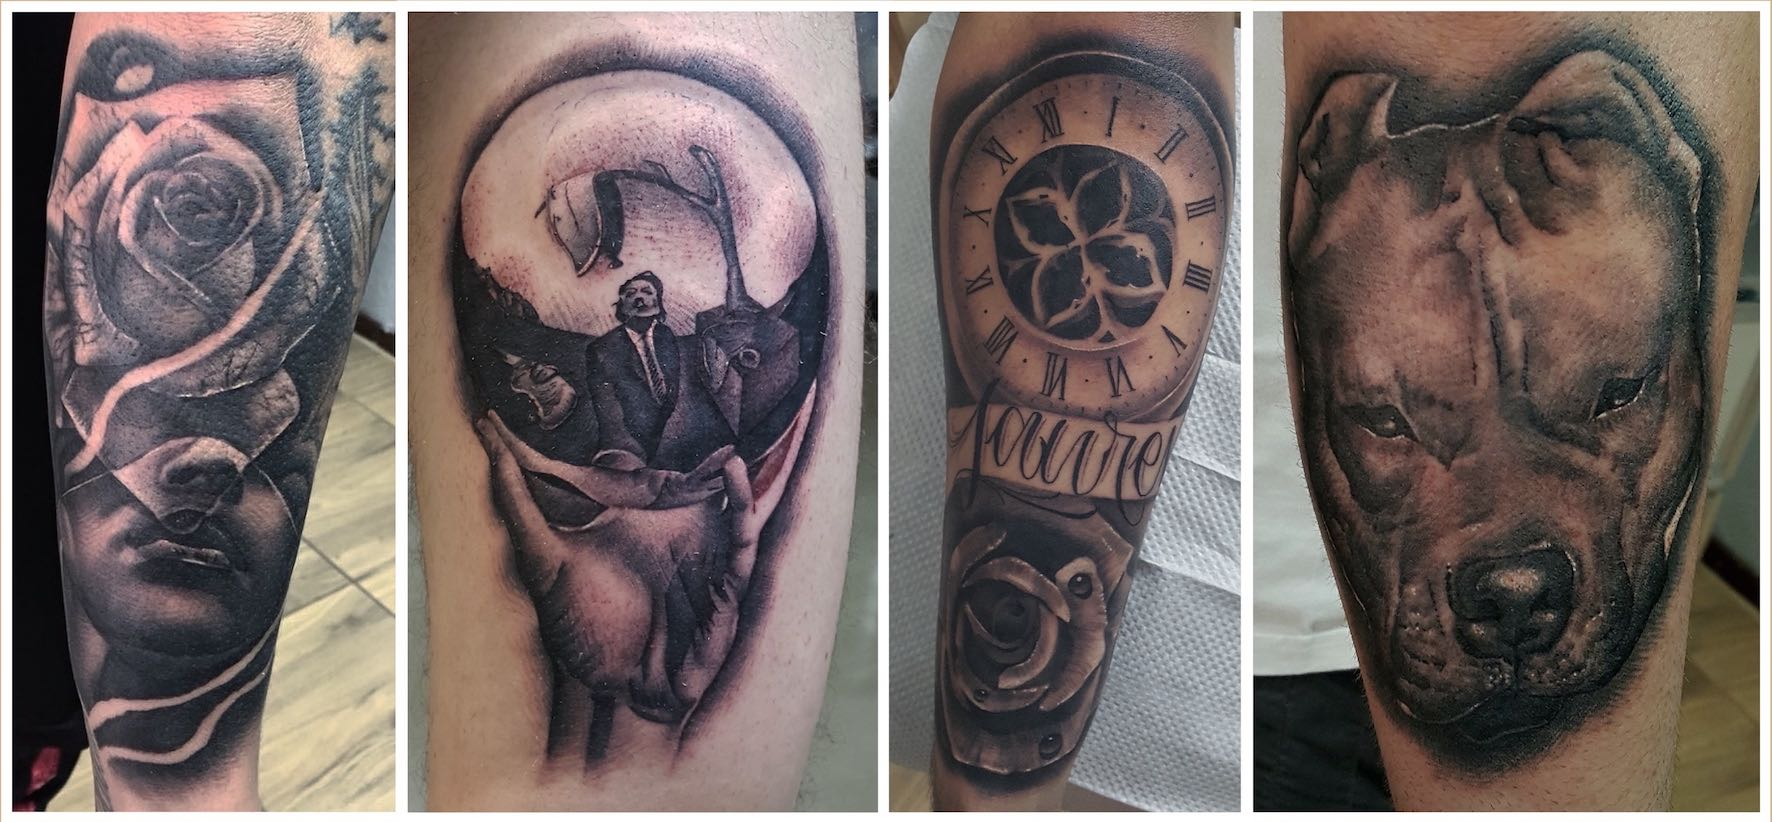 A selection of black and grey tattoos done by Kyle Beyers